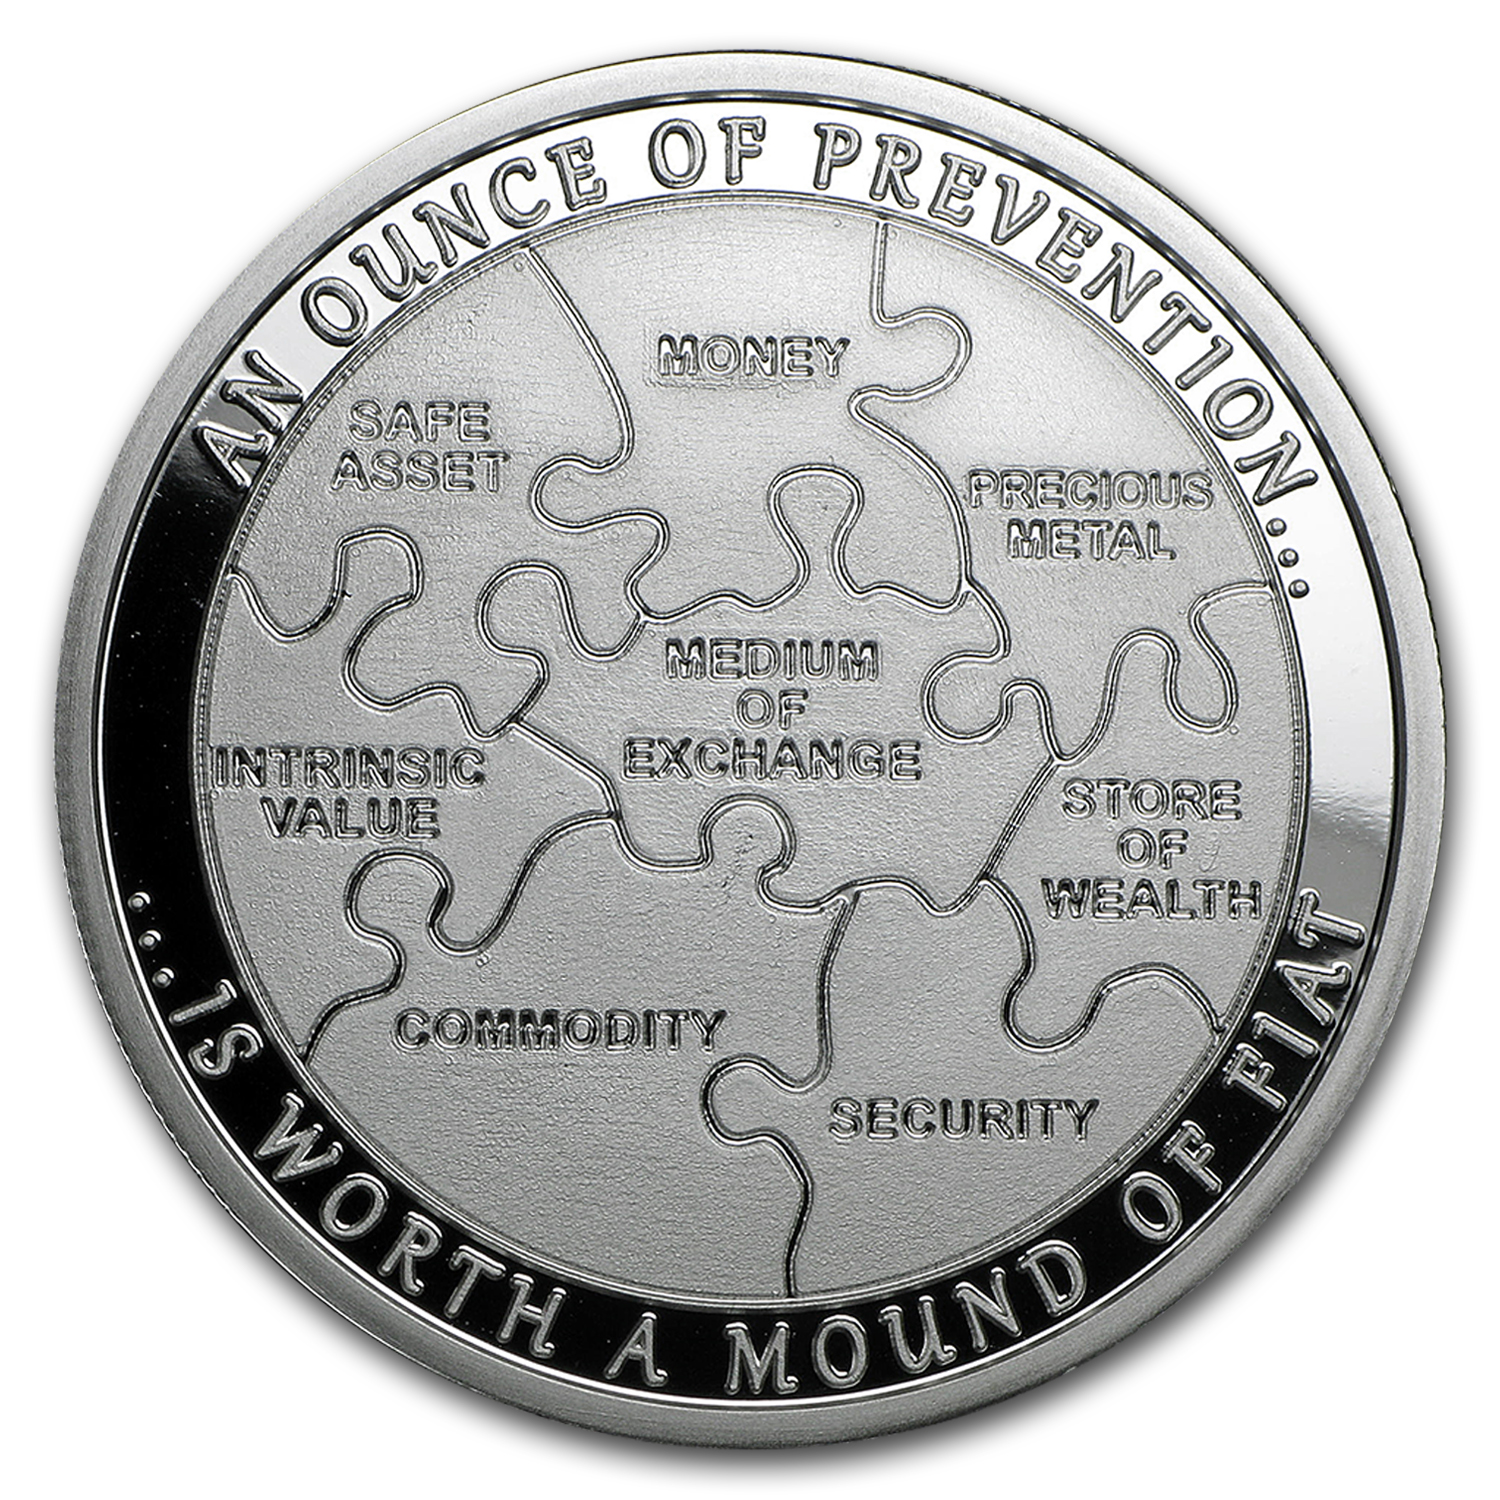 1 oz Silver Round - An Ounce of Prevention: Security